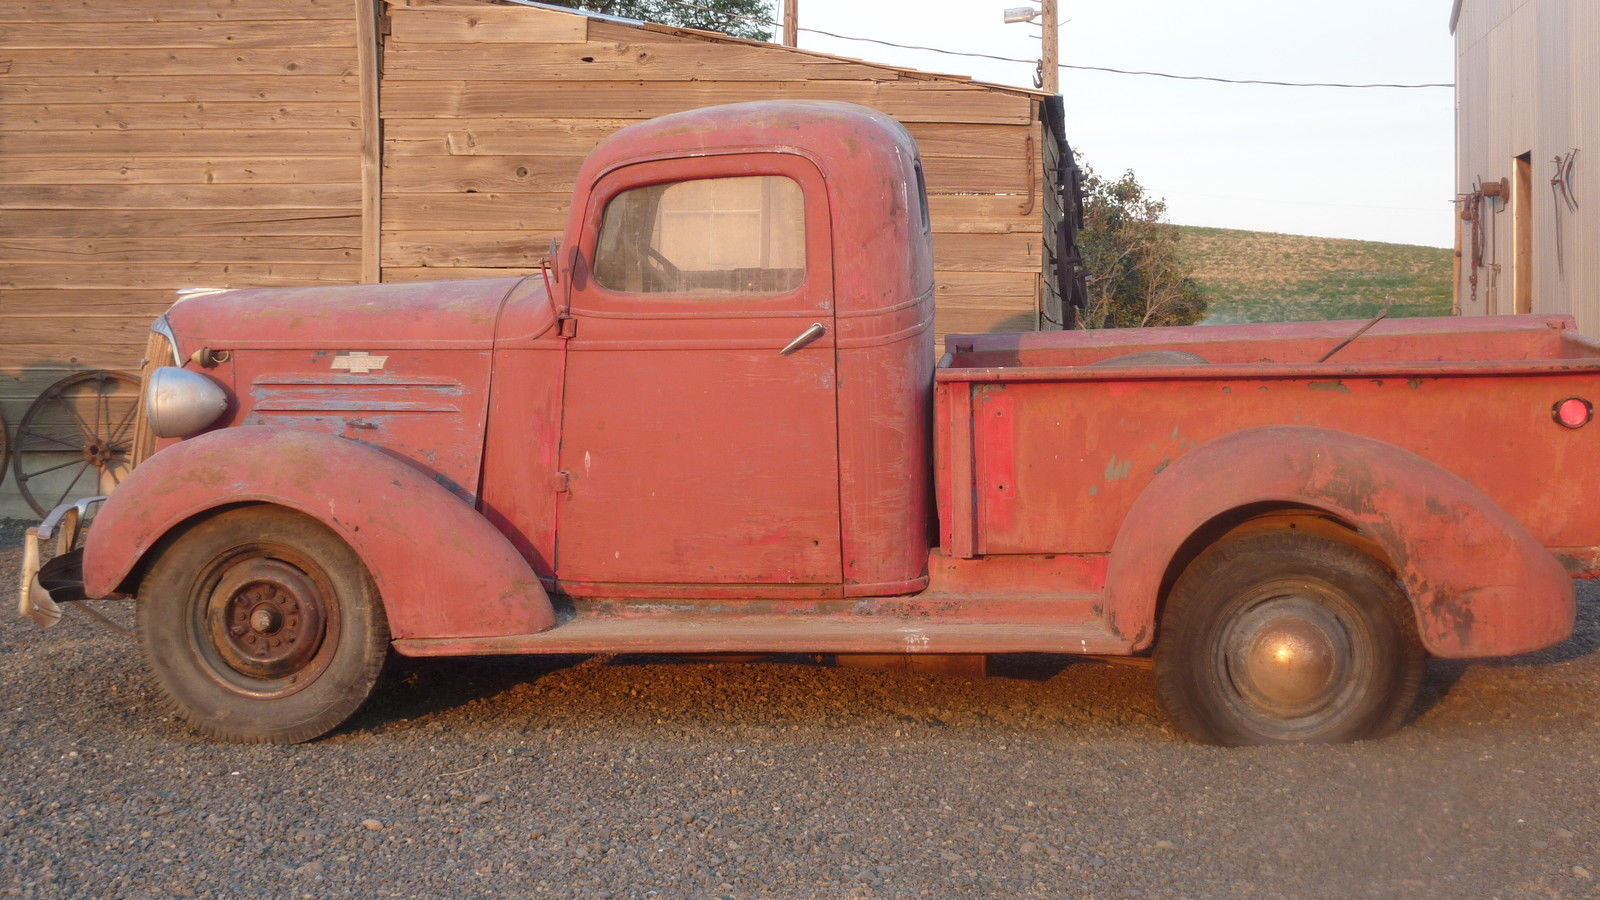 1937 Chevy Pickup Antique Truck Vintage Barn Find For Sale In Touchet Washington United States